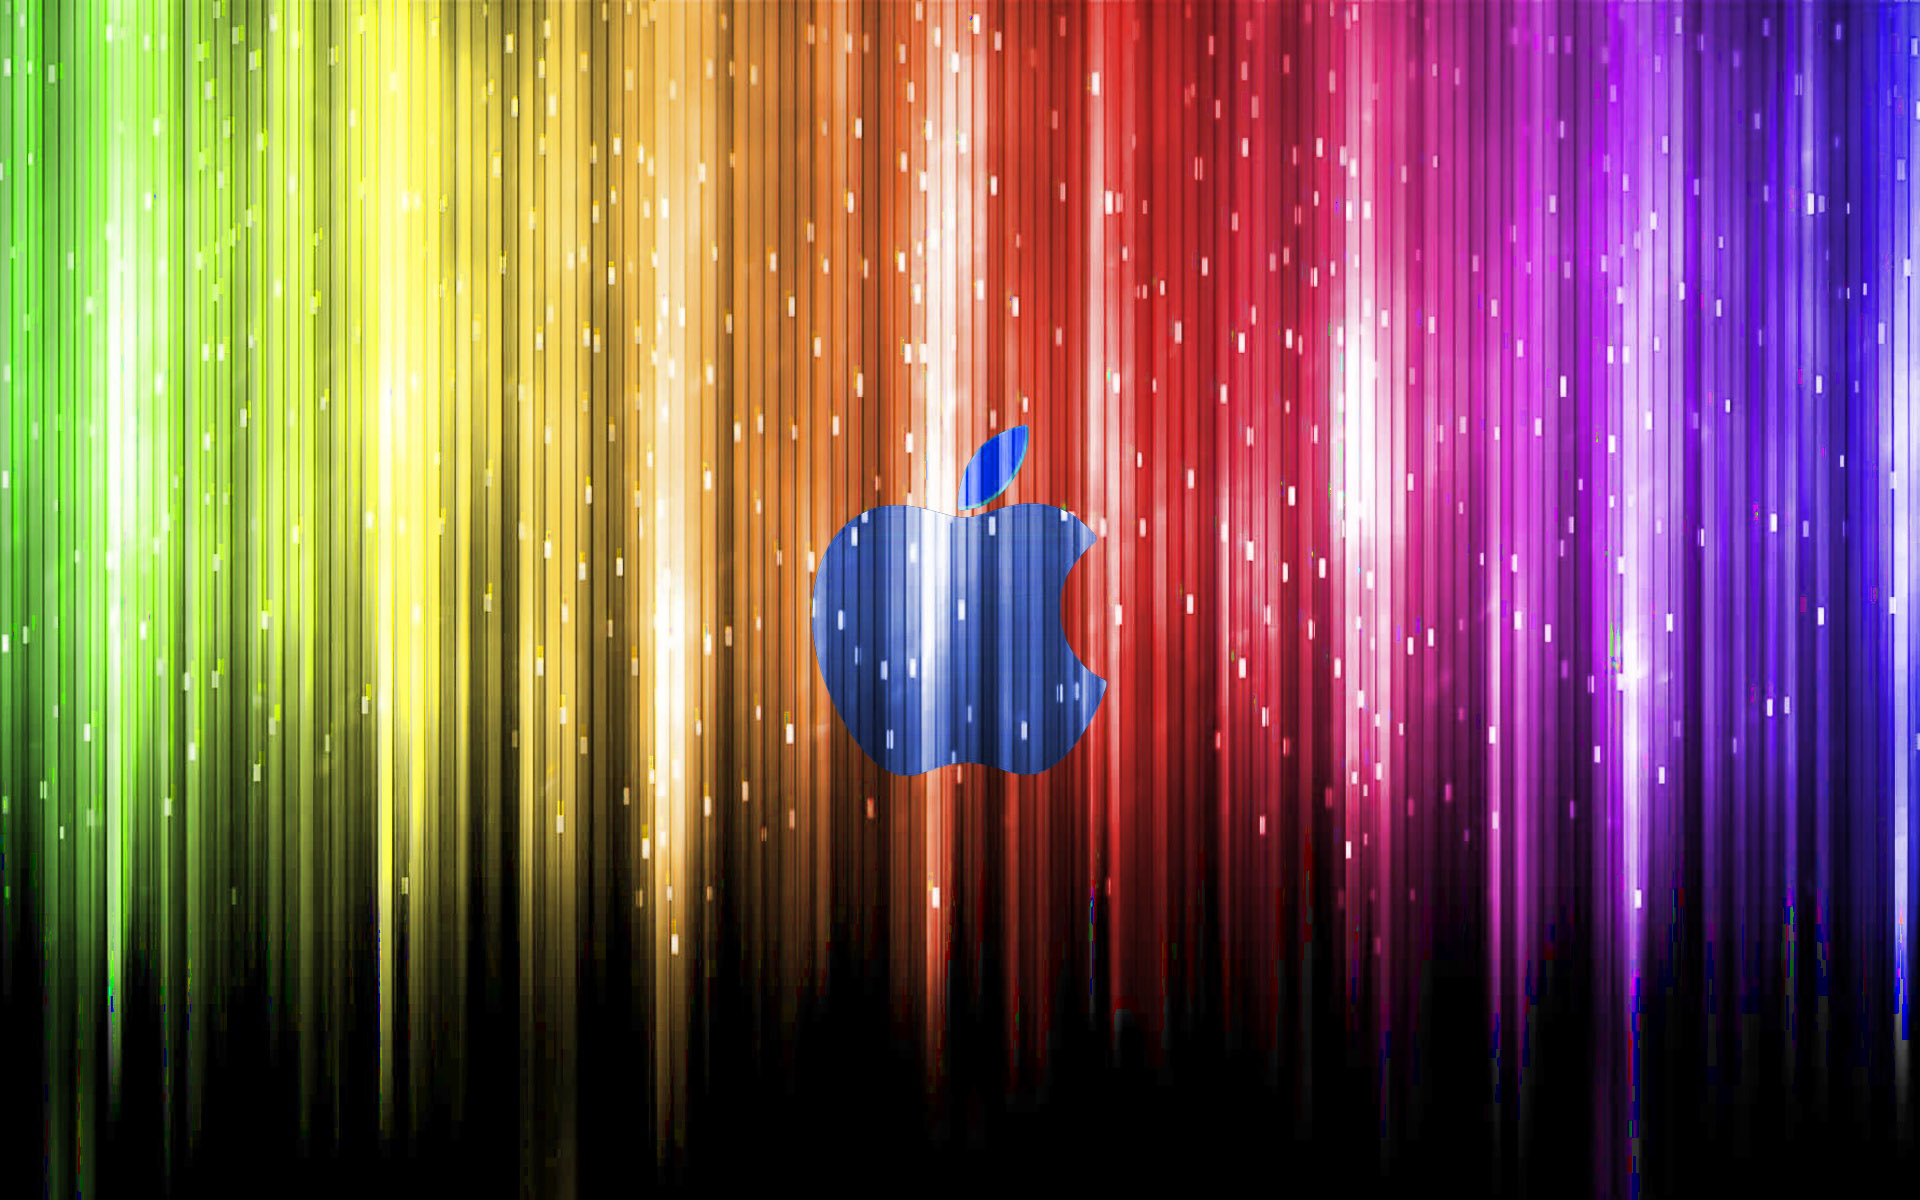 Wallpaper   Wallpaper apple mac animaatjes 12 1920x1200